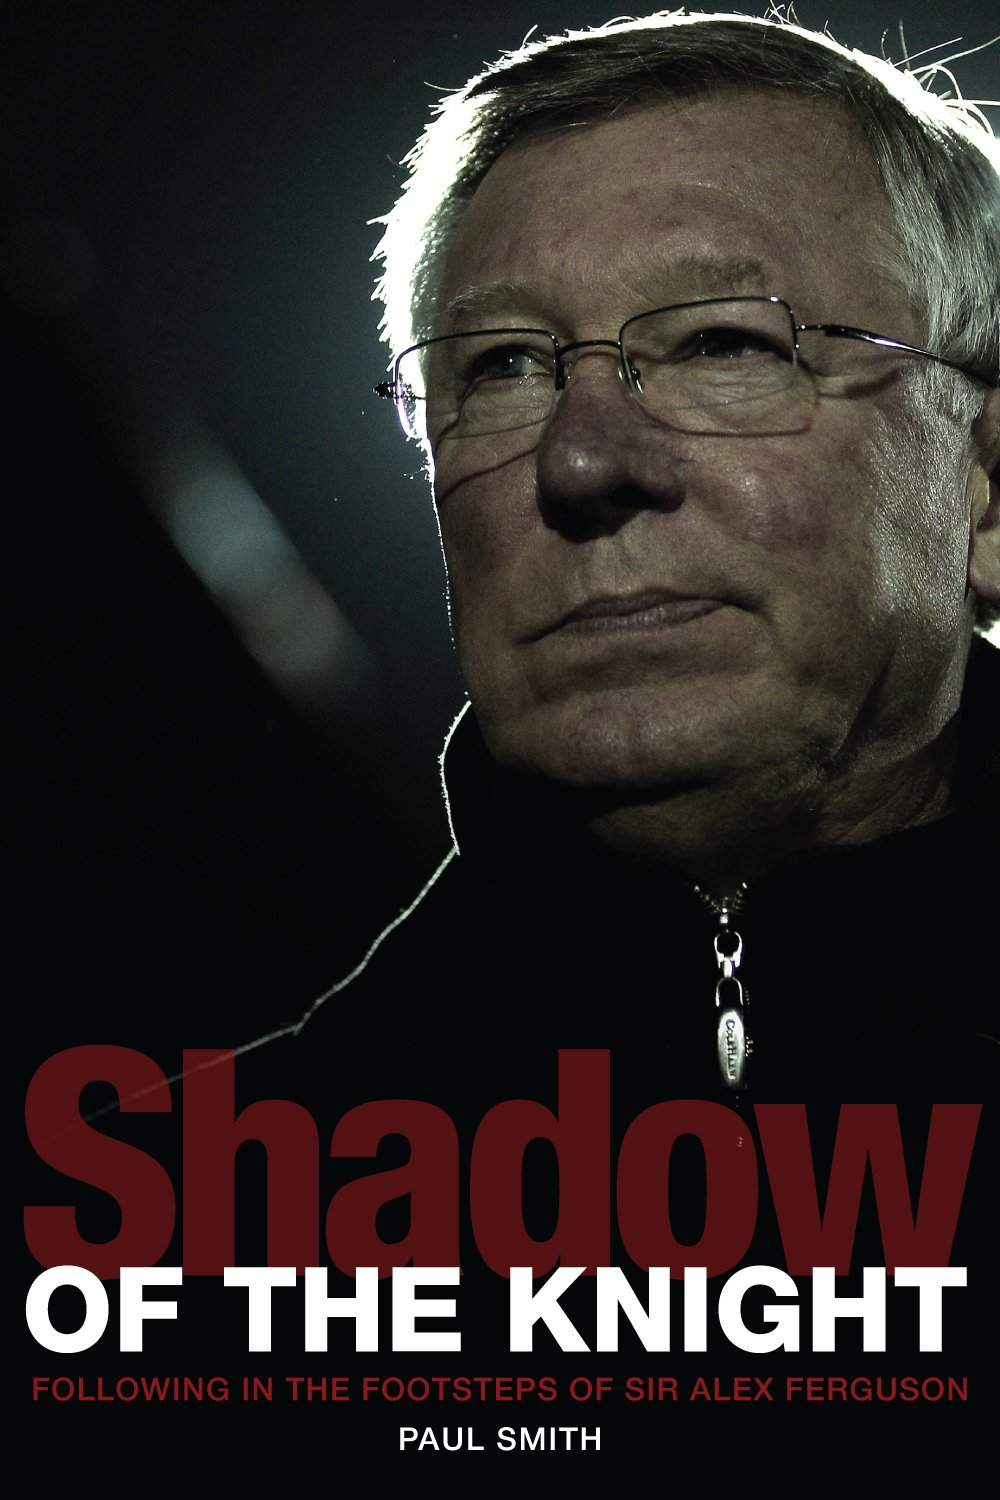 Shadow of the Knight: Football's Life After Sir Alex Ferguson